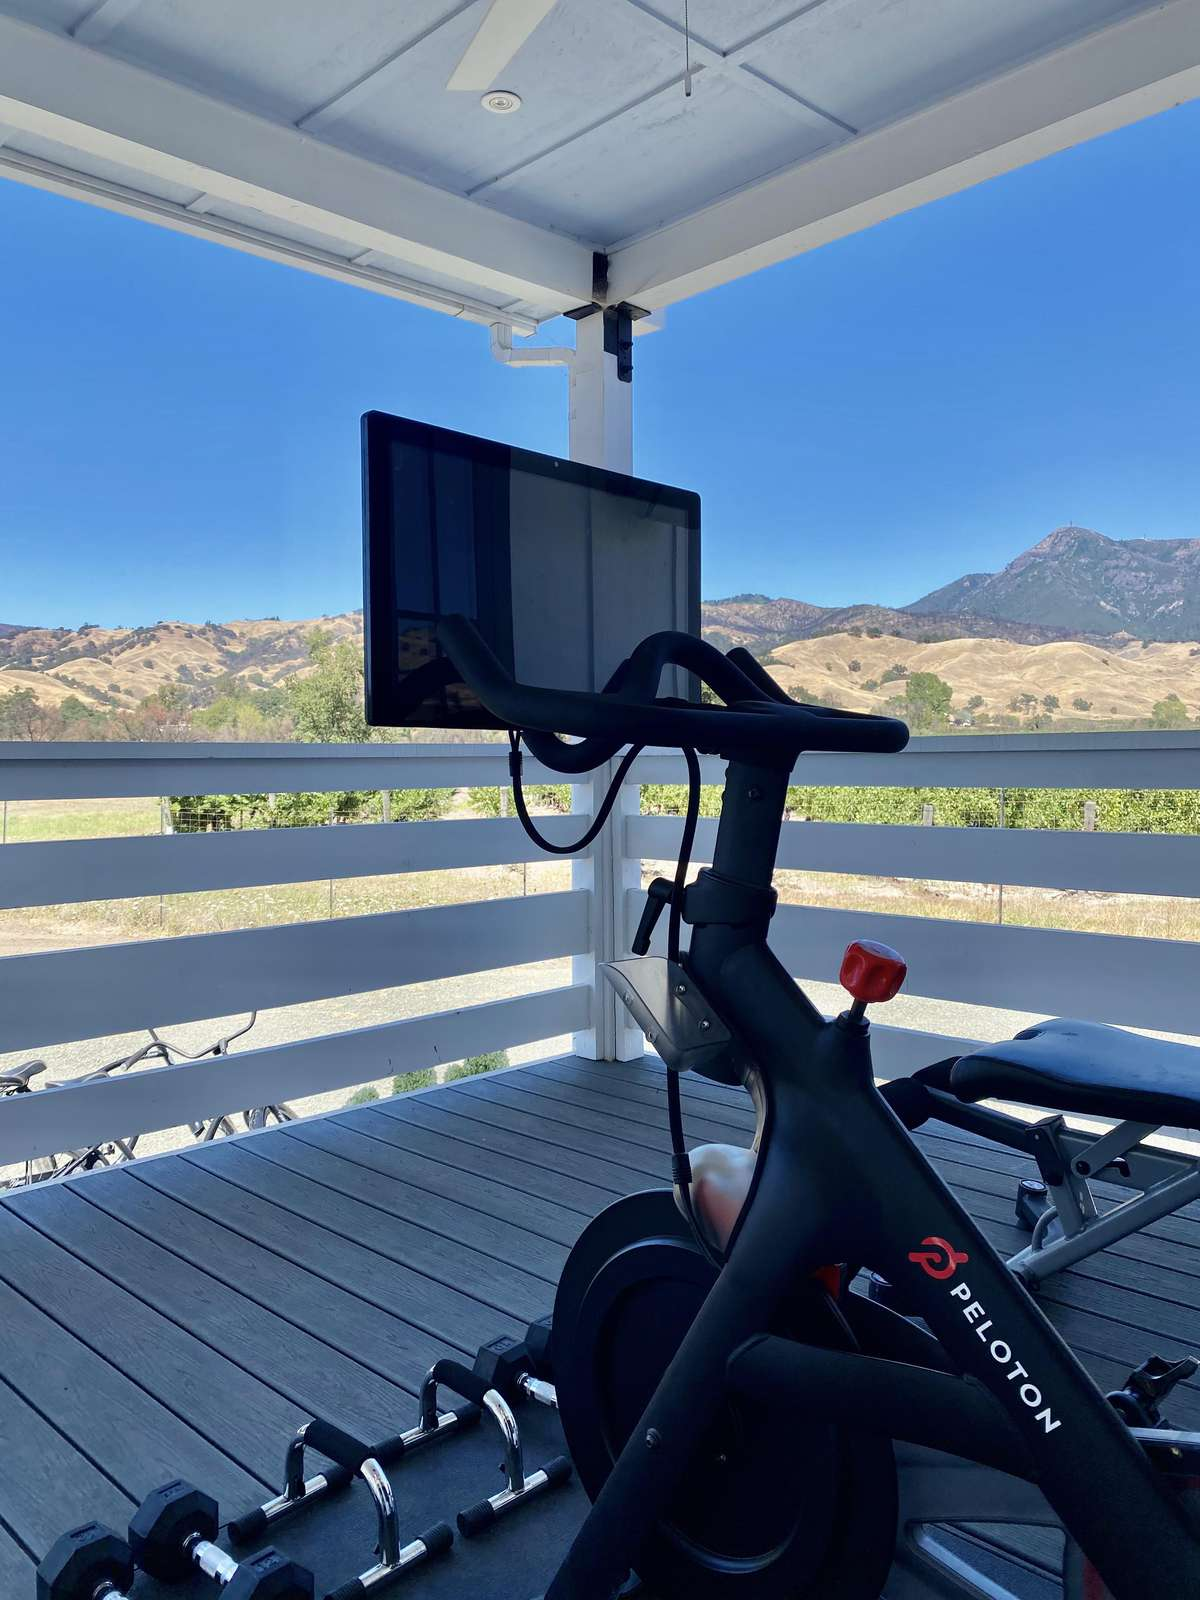 Peloton for your use with OK views!